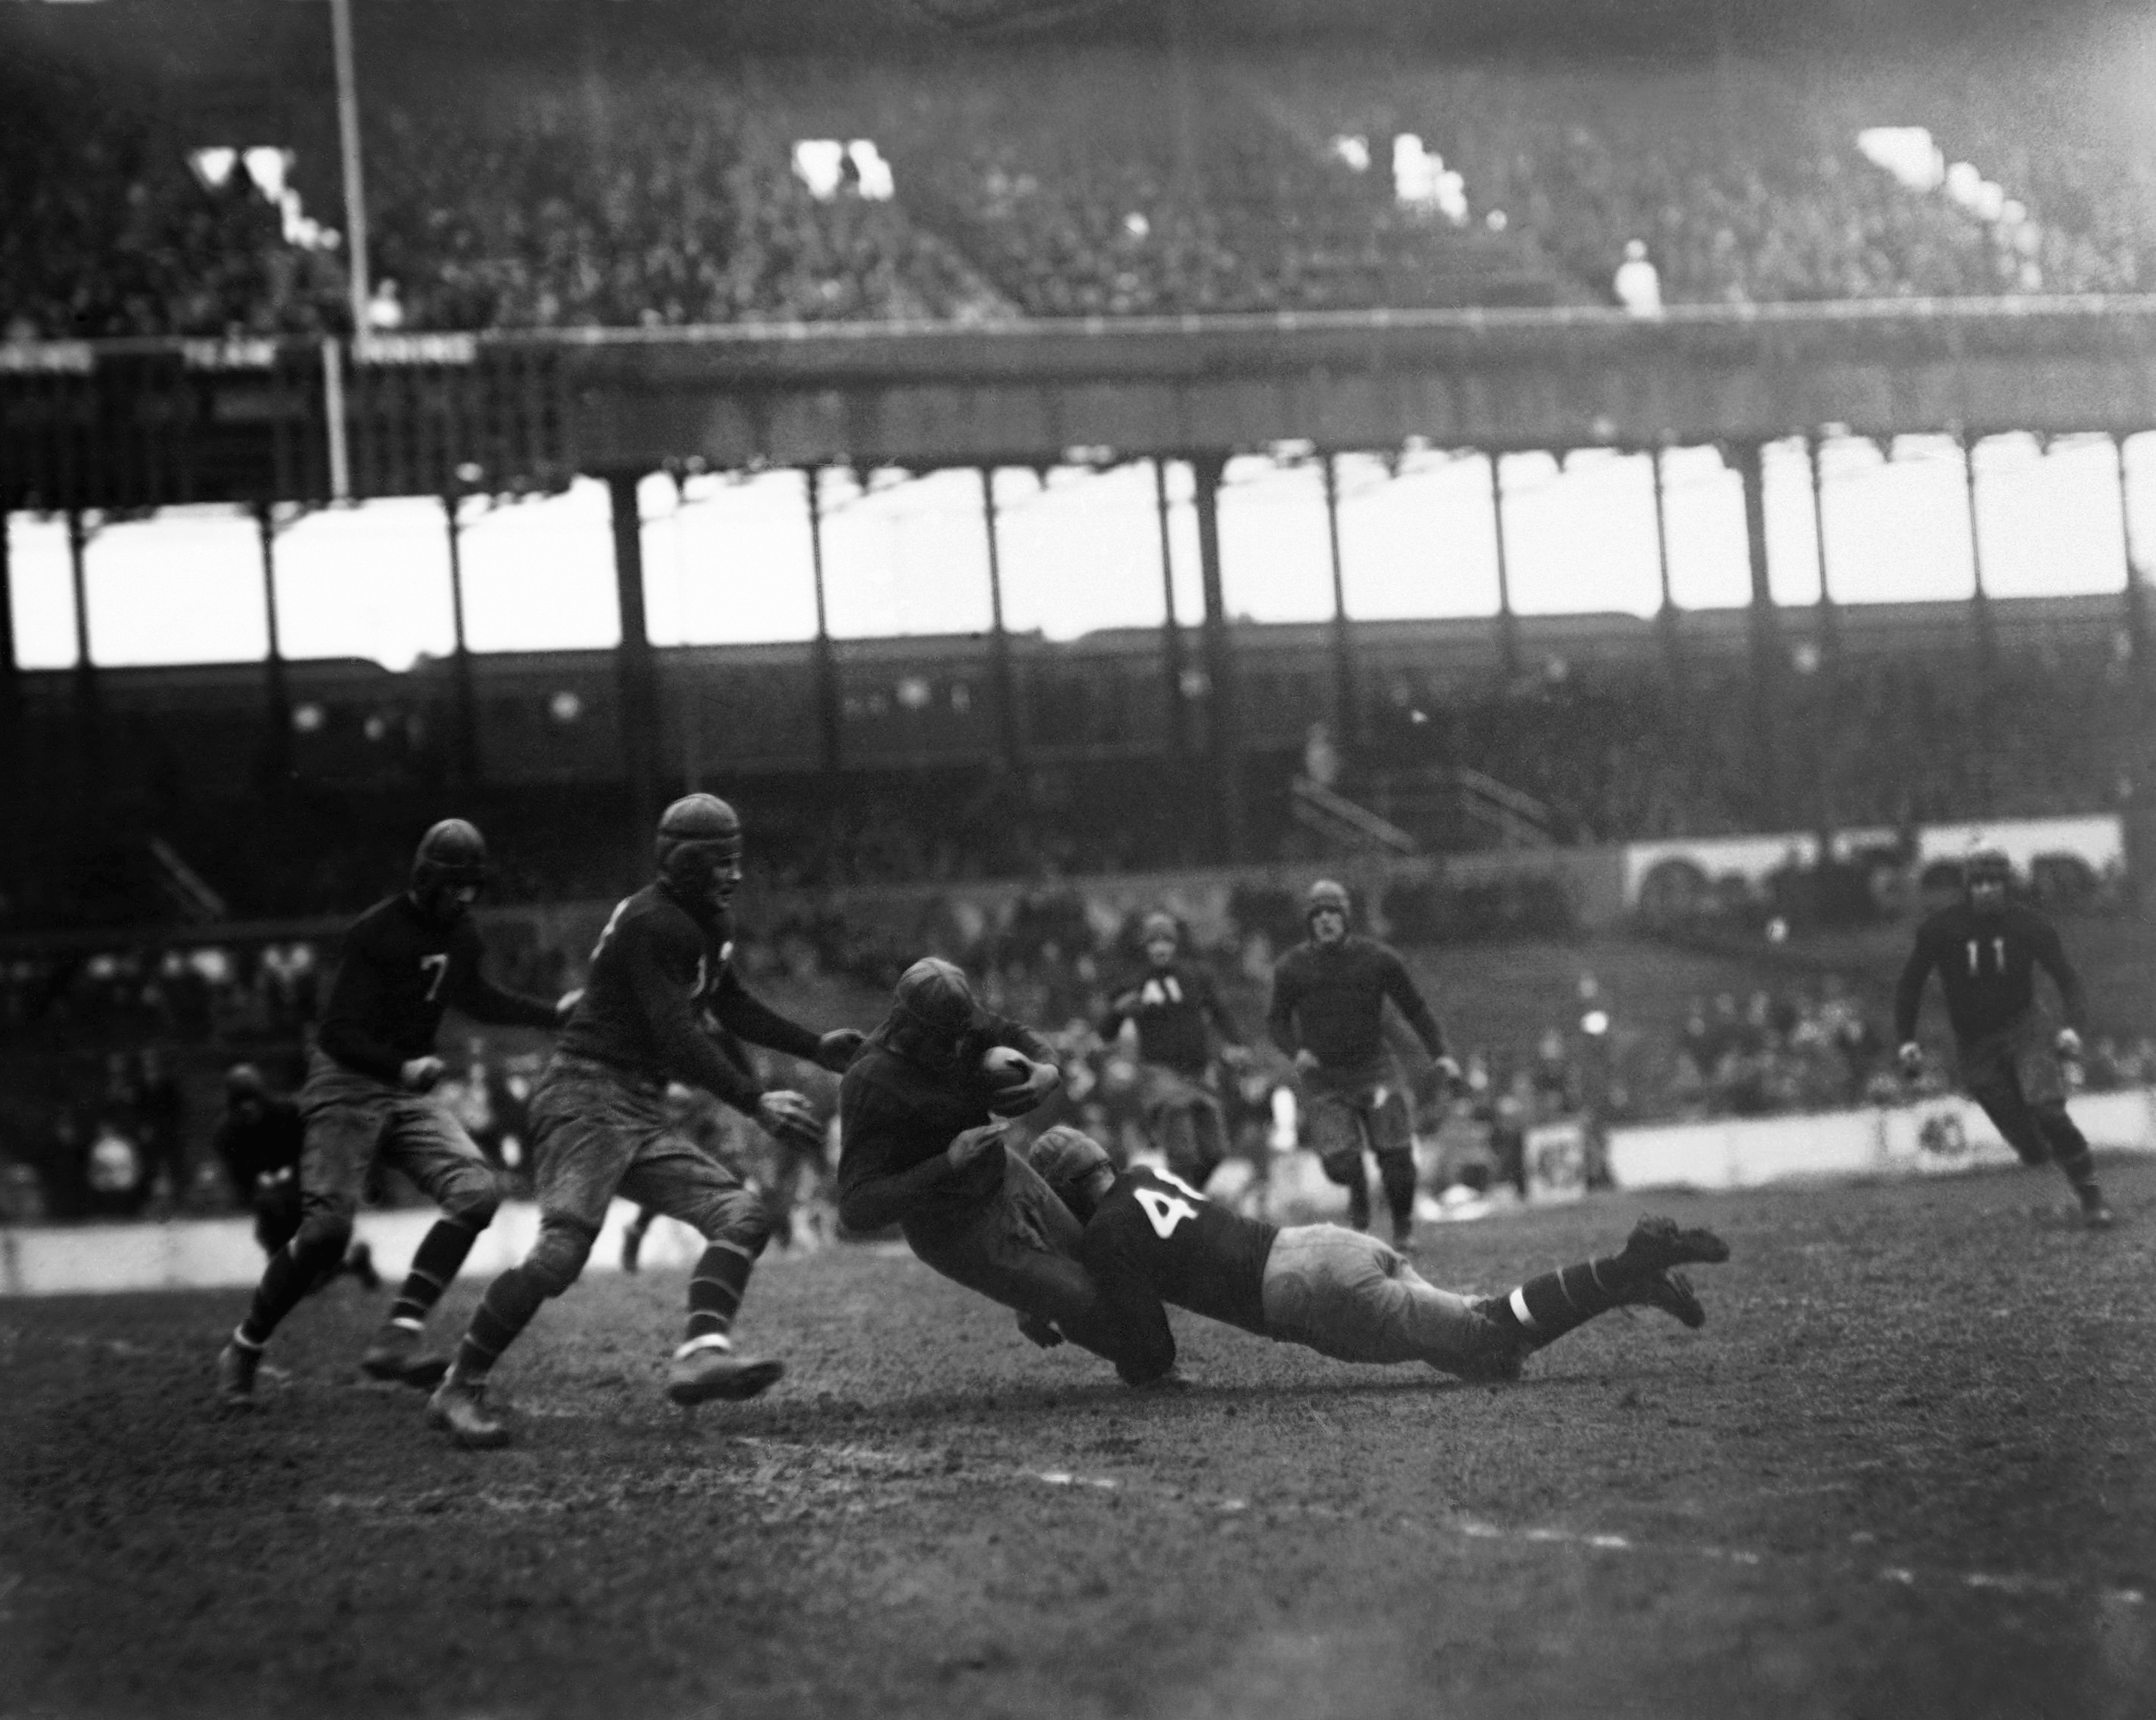 Hap Moran, New York Giants (November 17, 1929)